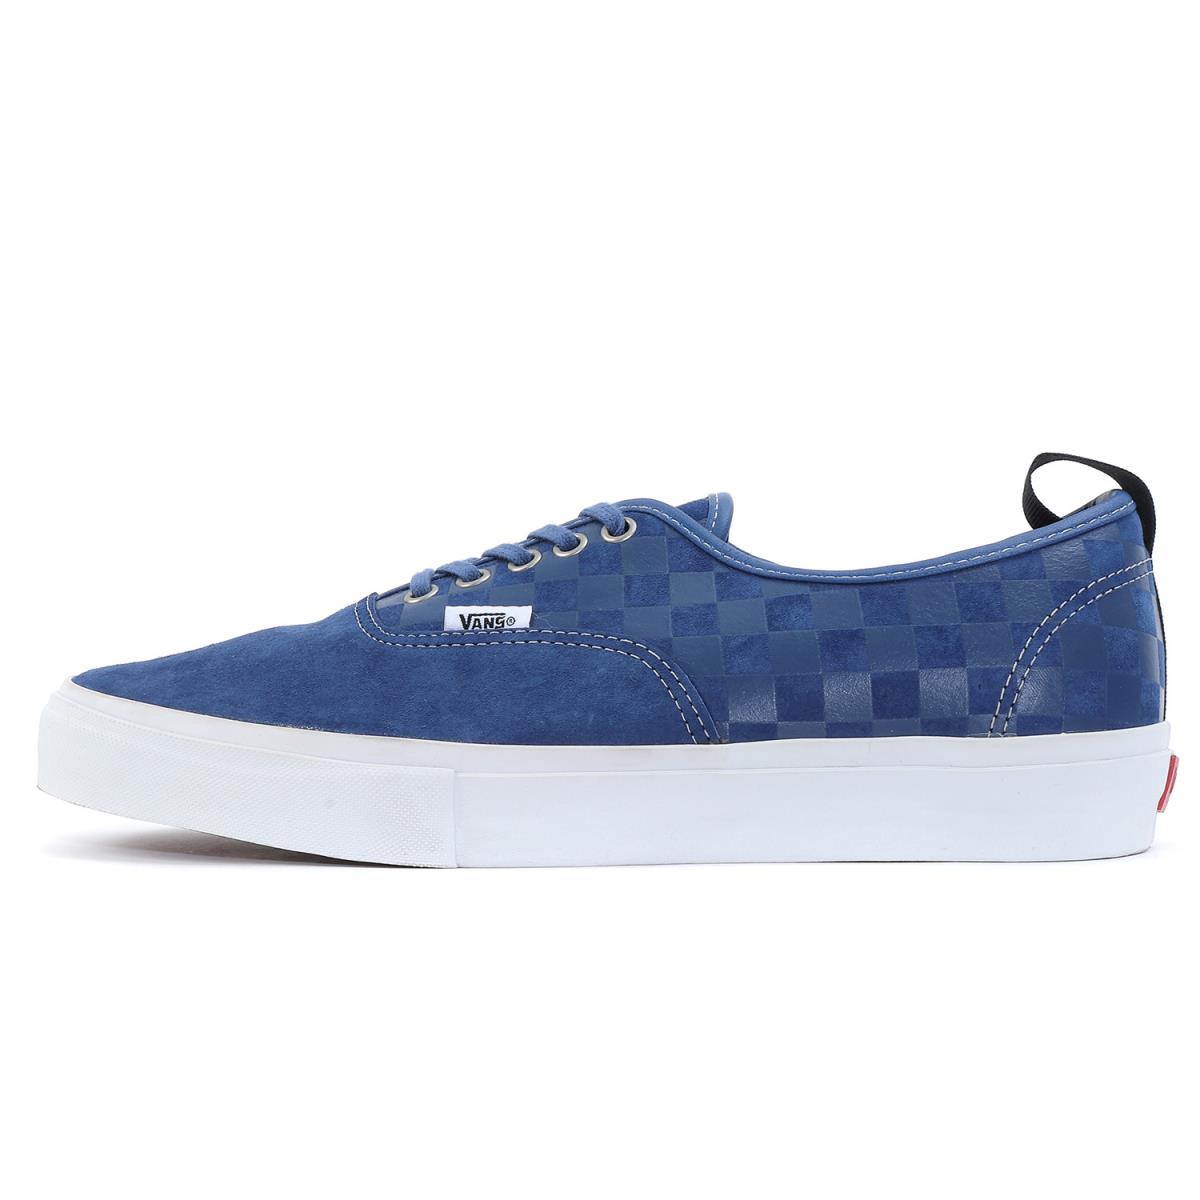 021a3eb302 BEEGLE by Boo-Bee  VANS (vans) SYNDICATE AUTHENTIC 69 PRO